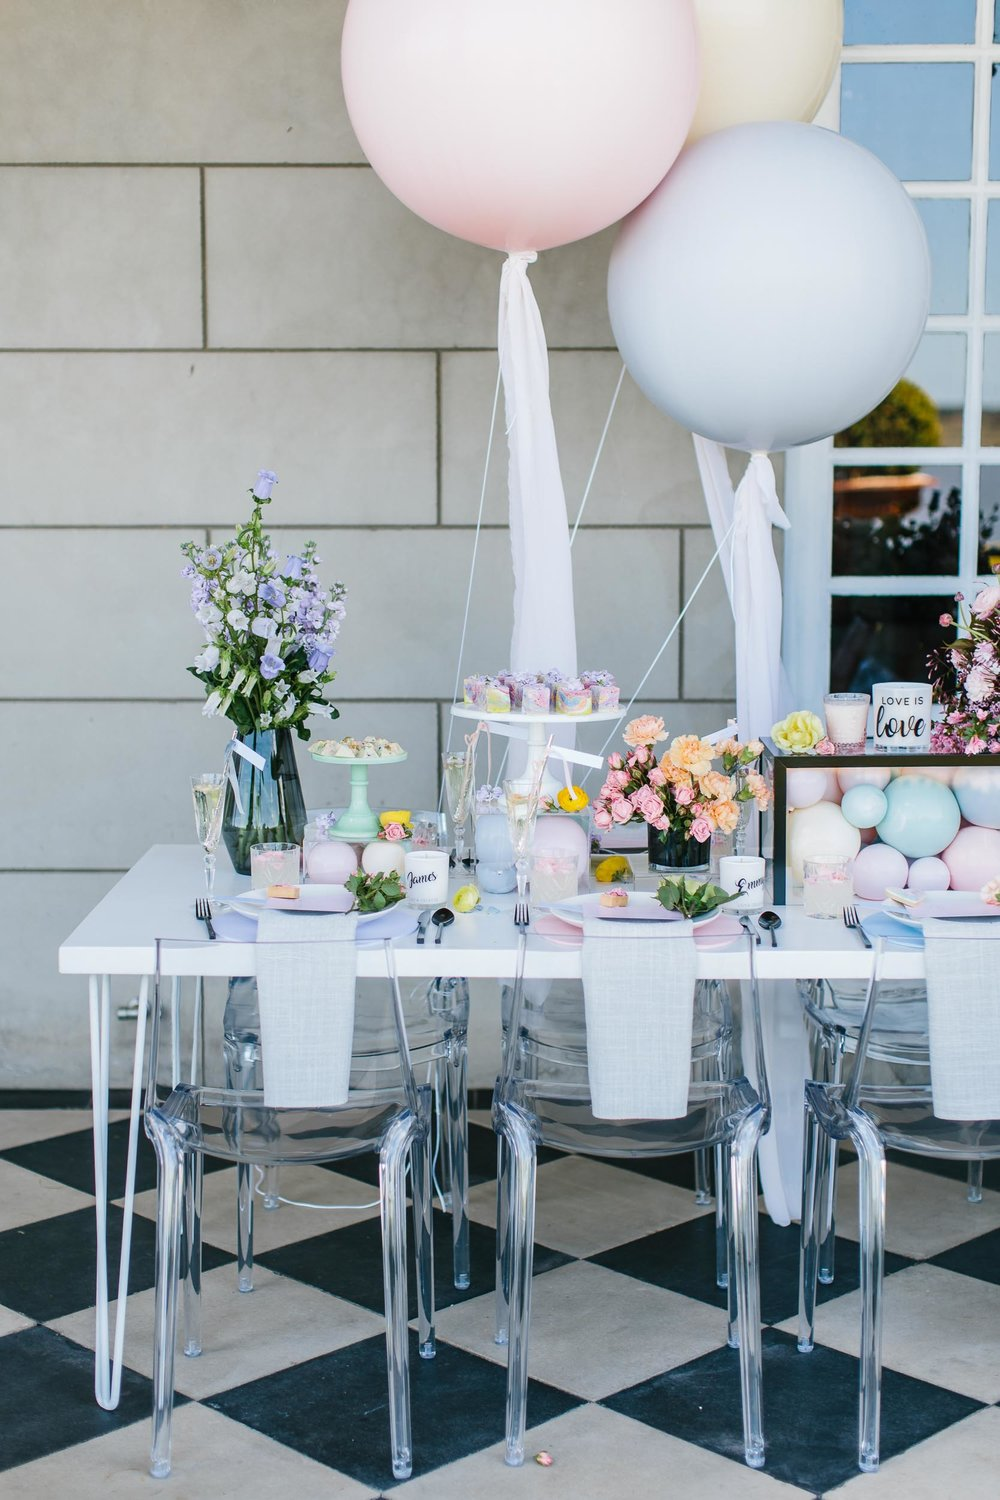 Pastel Rainbow Table Setting with Balloons | Wedding Photography by Kas Richards